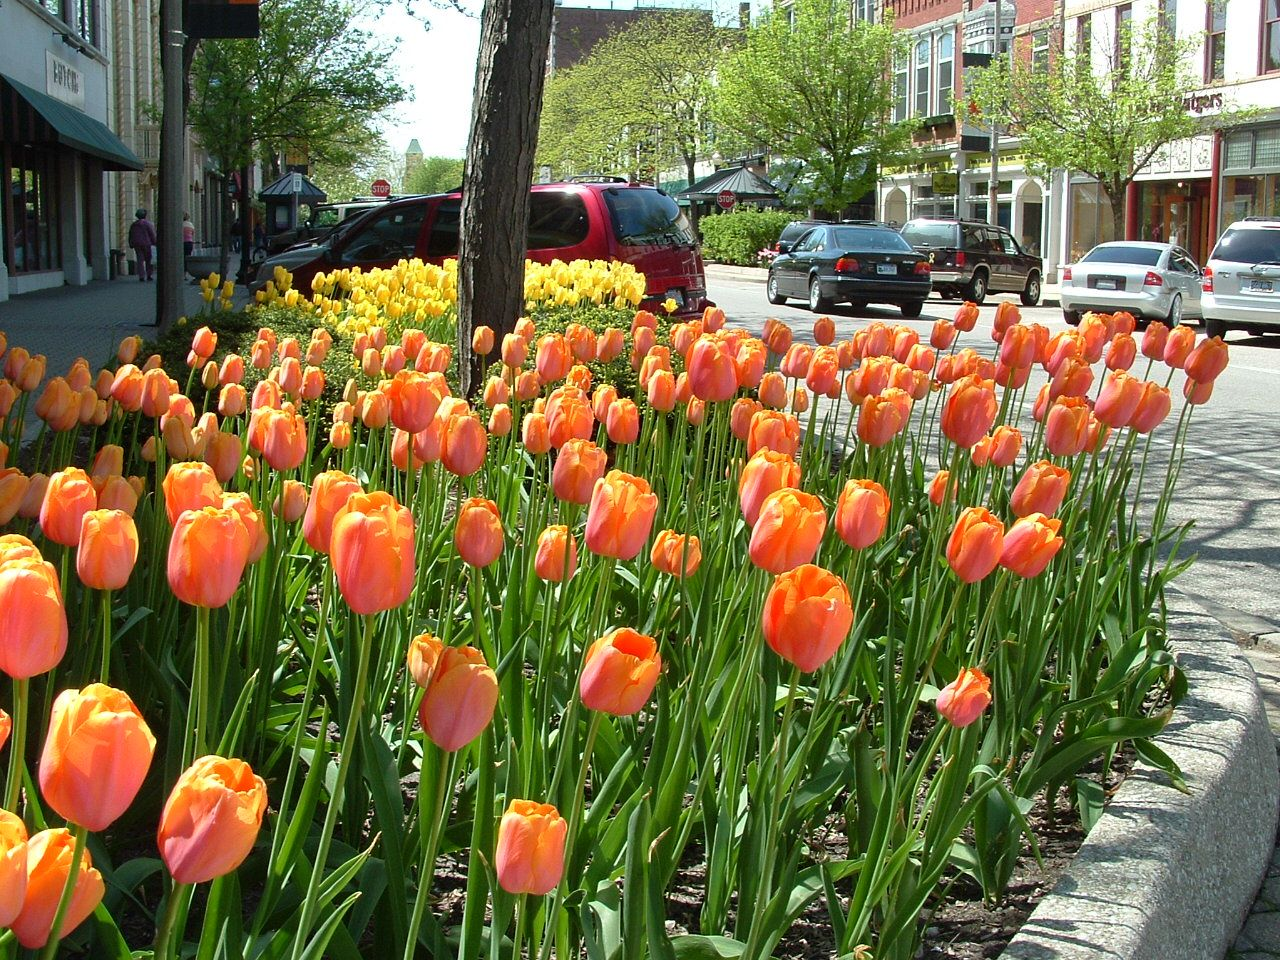 holland michigan Tulip beds in downtown Holland